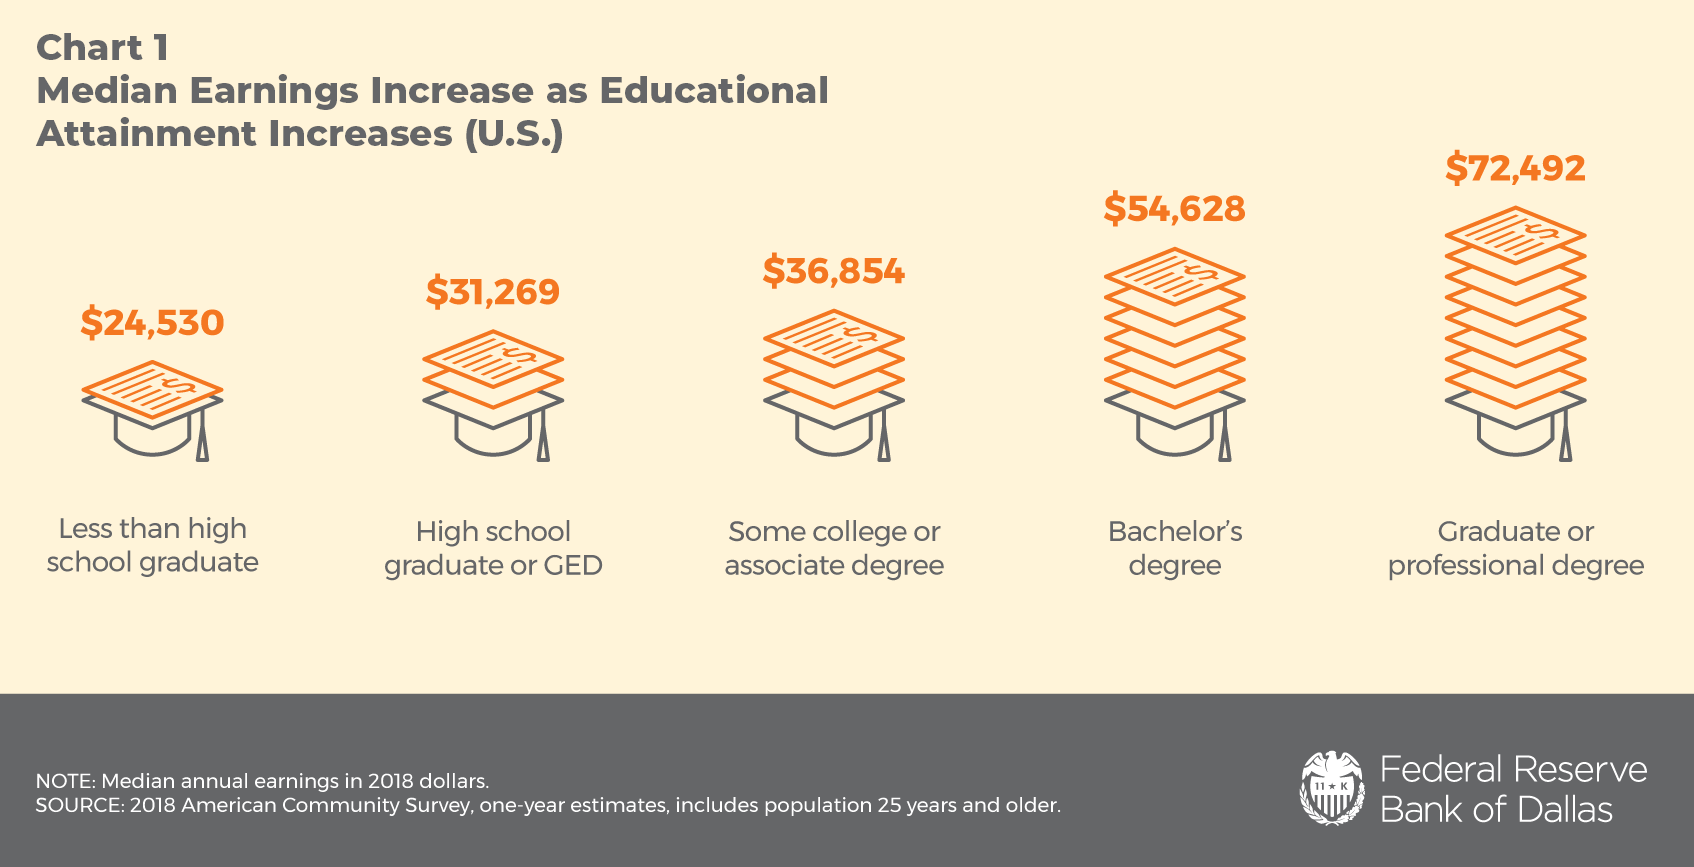 Chart 1: Median Earnings Increase as Educational Attainment Increases (U.S.)